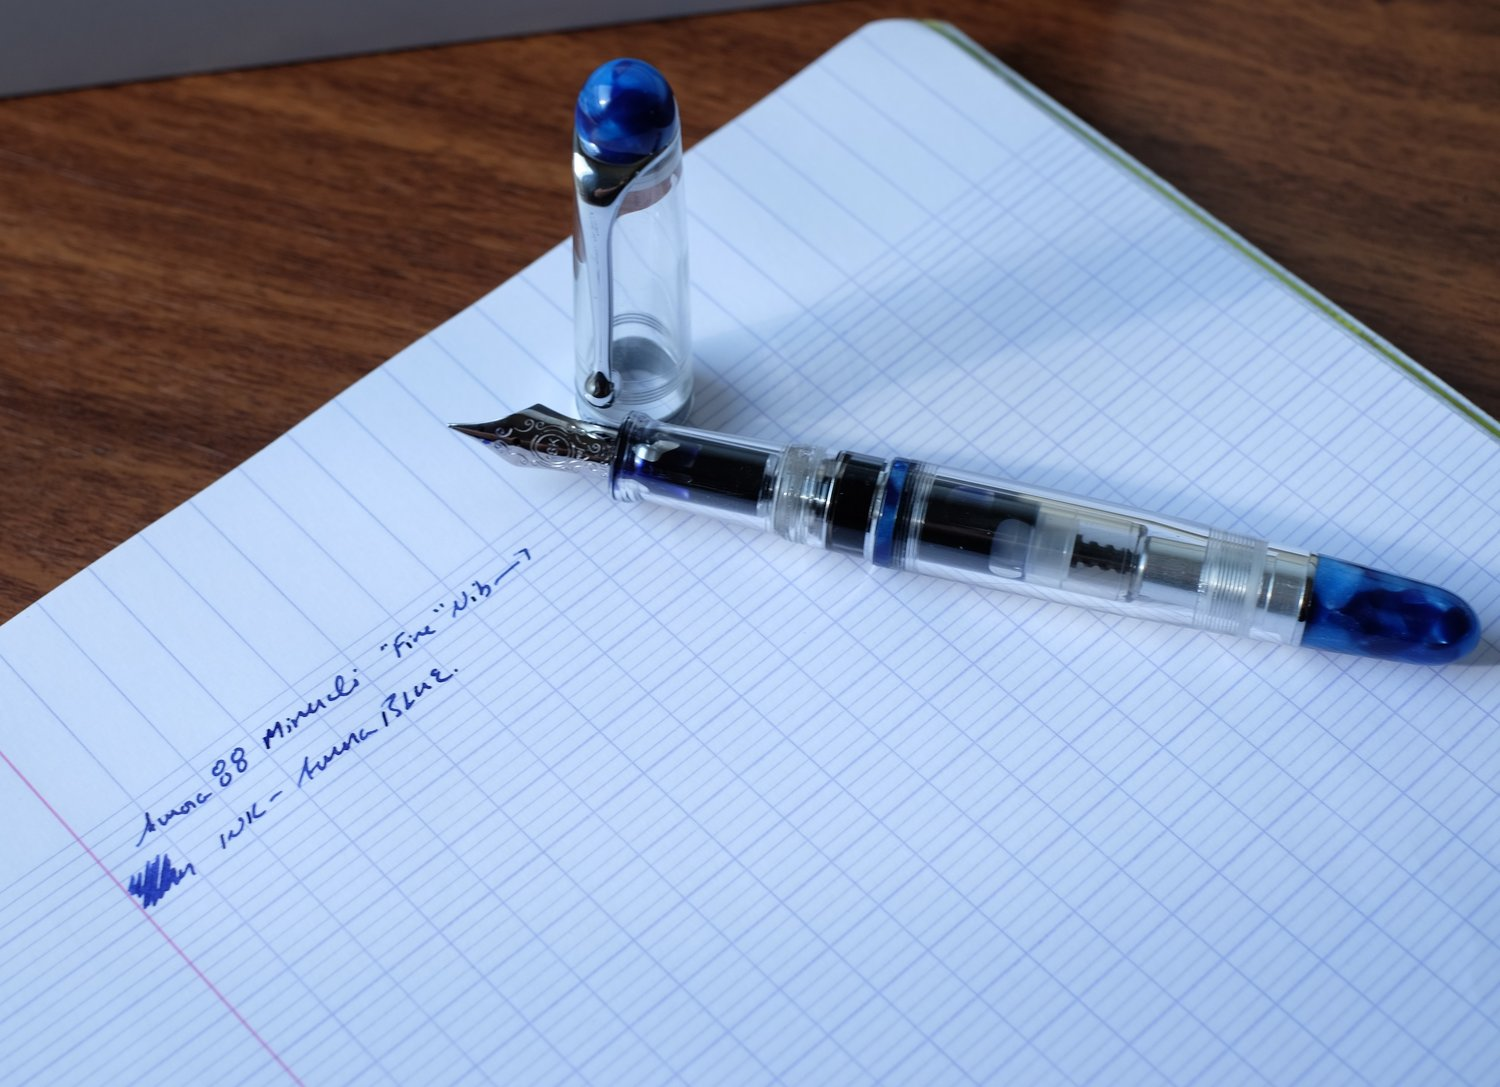 You can now pick up an Aurora 88 Minerali Demonstrator at a great price!